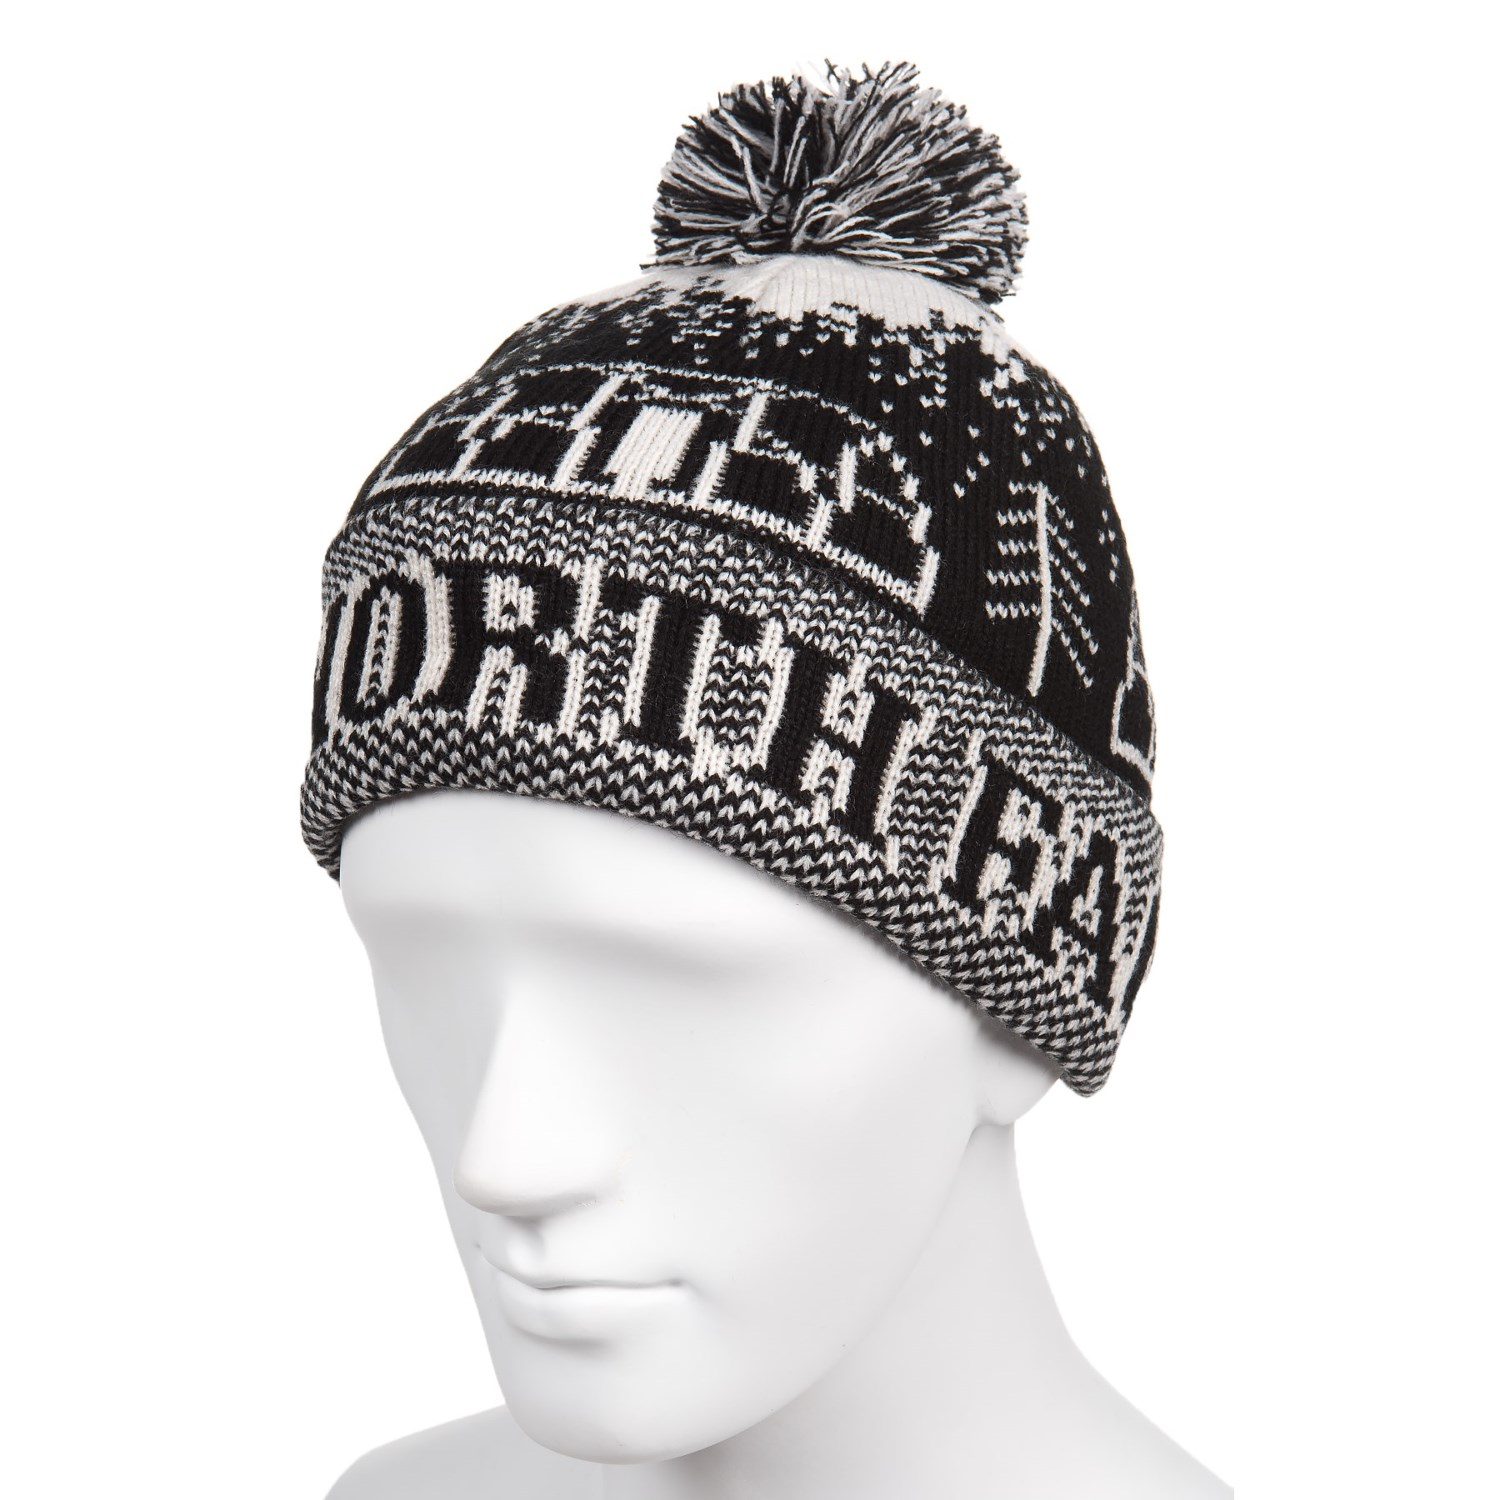 The North Face Fair Isle Pom Pom Beanie (For Men and Women)